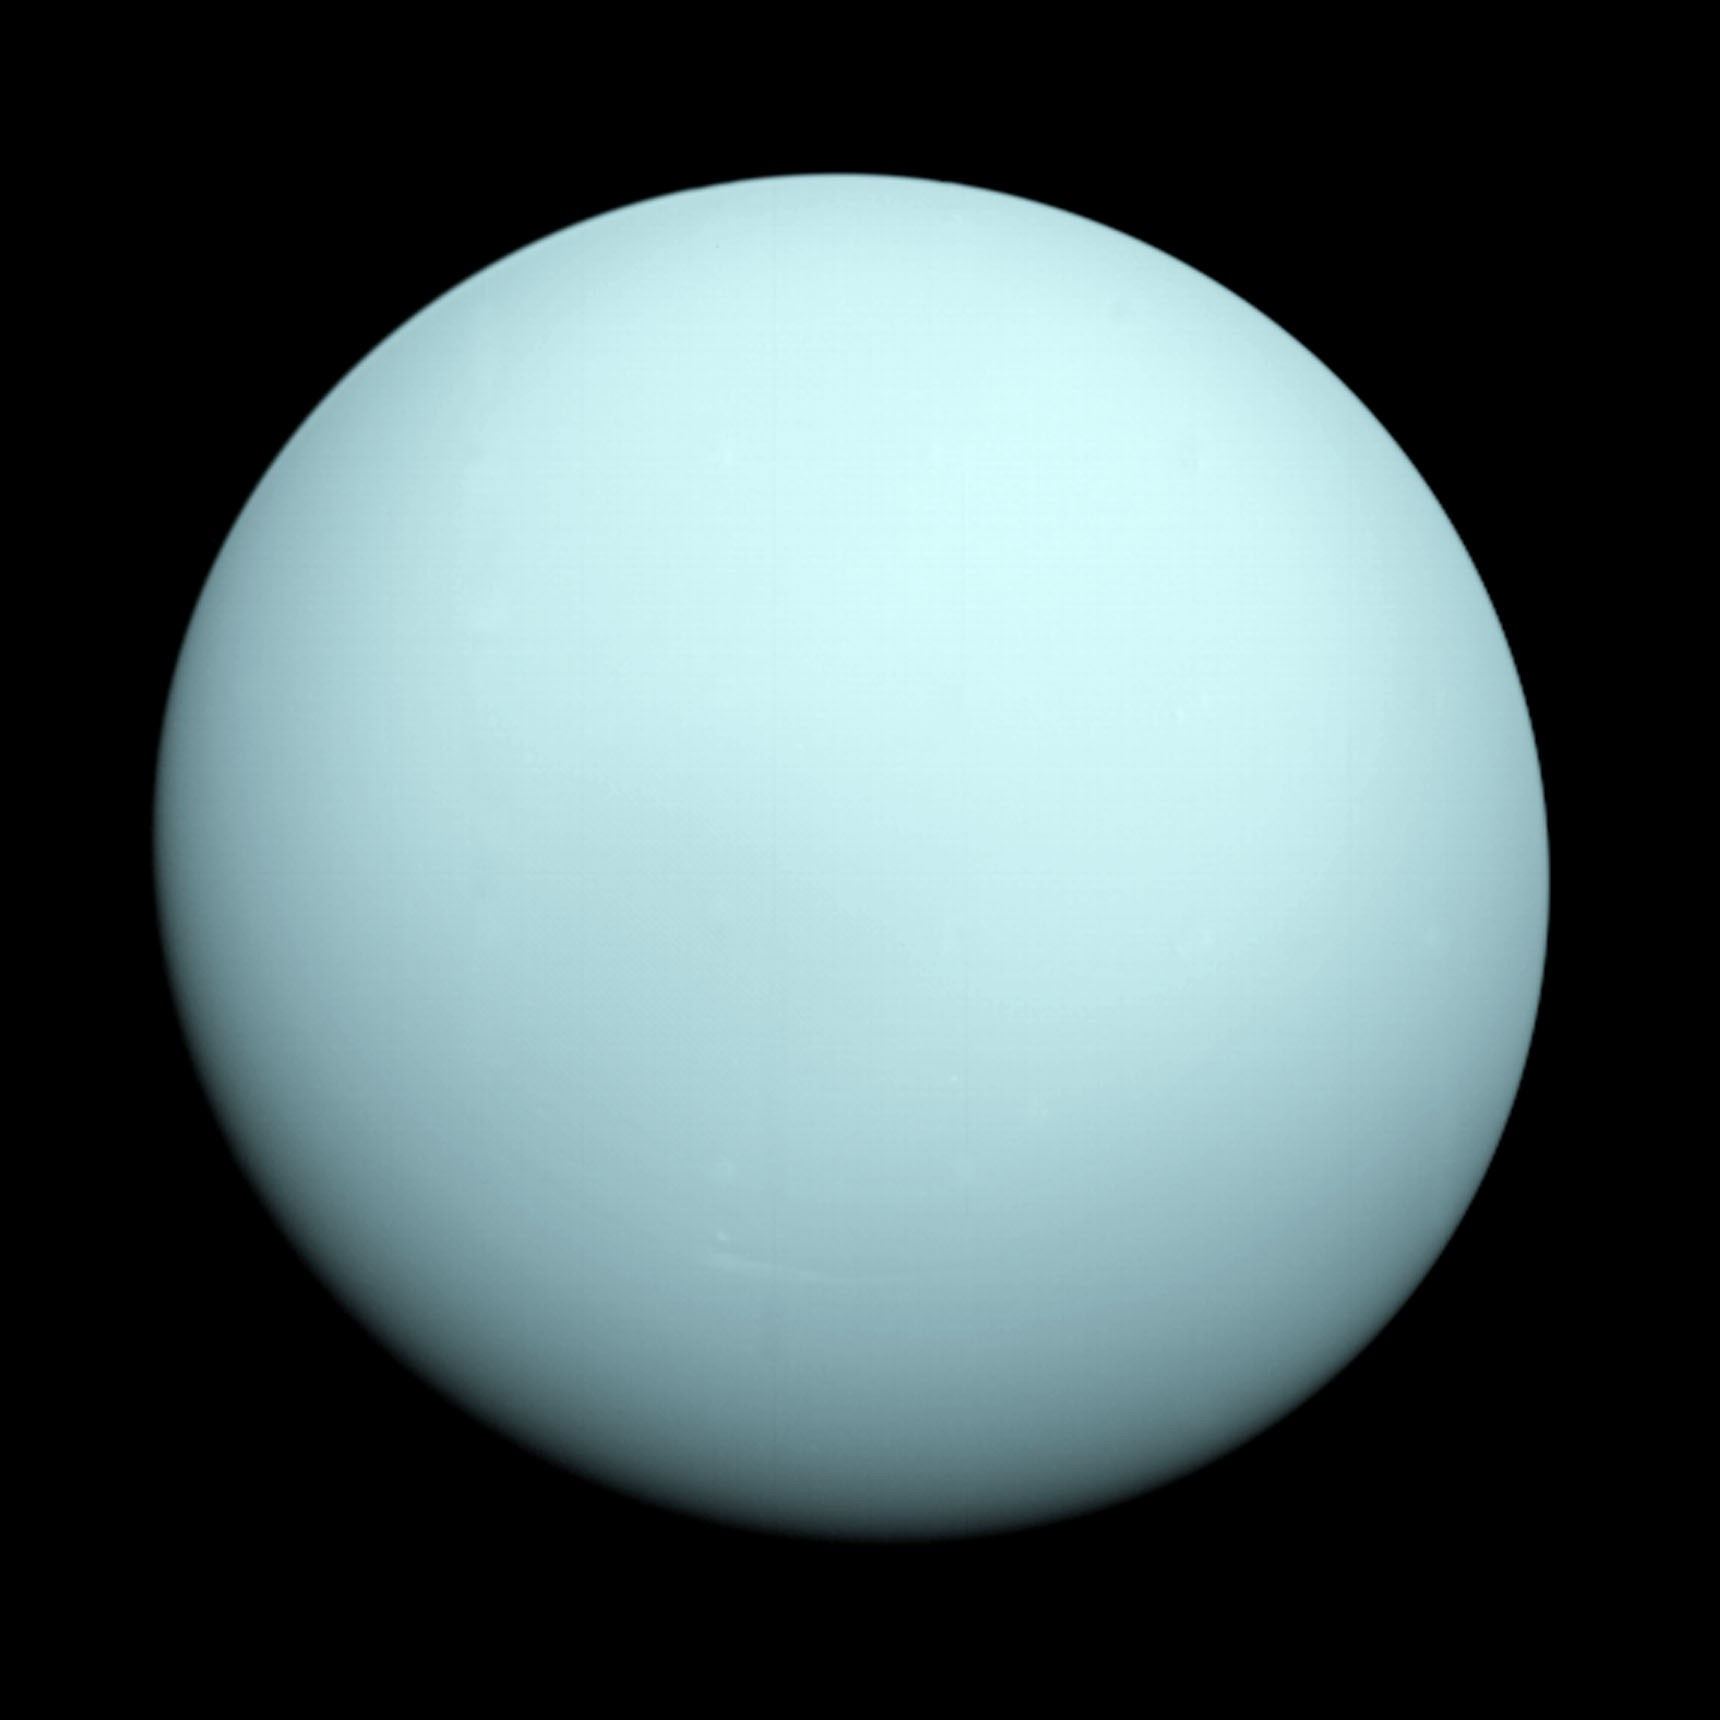 https://upload.wikimedia.org/wikipedia/commons/3/3d/Uranus2.jpg